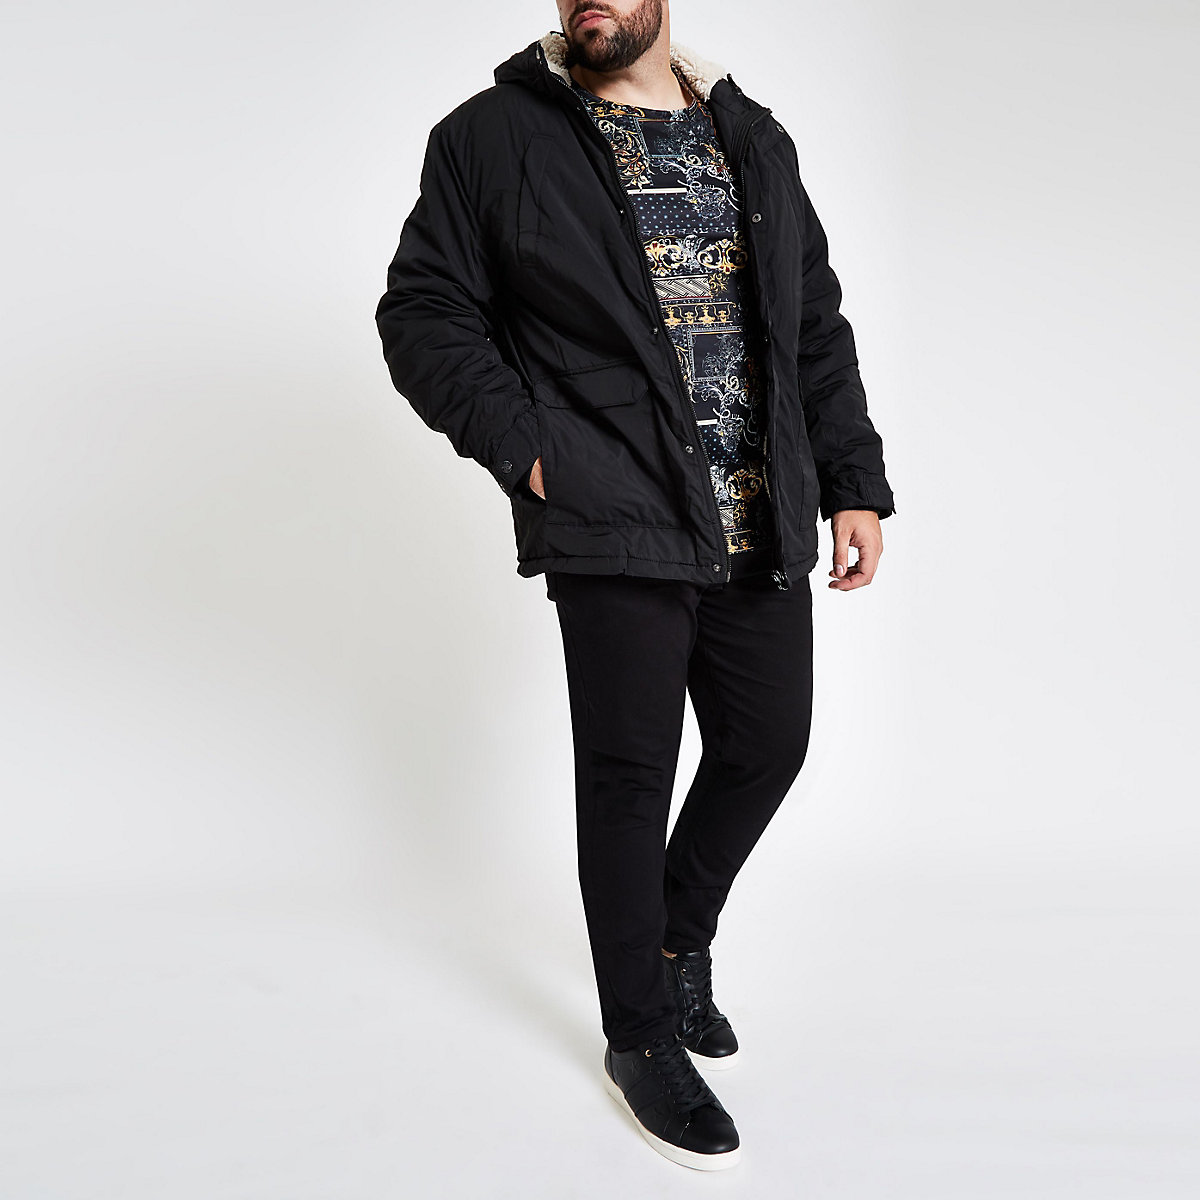 Big and Tall black hooded fleece lined coat